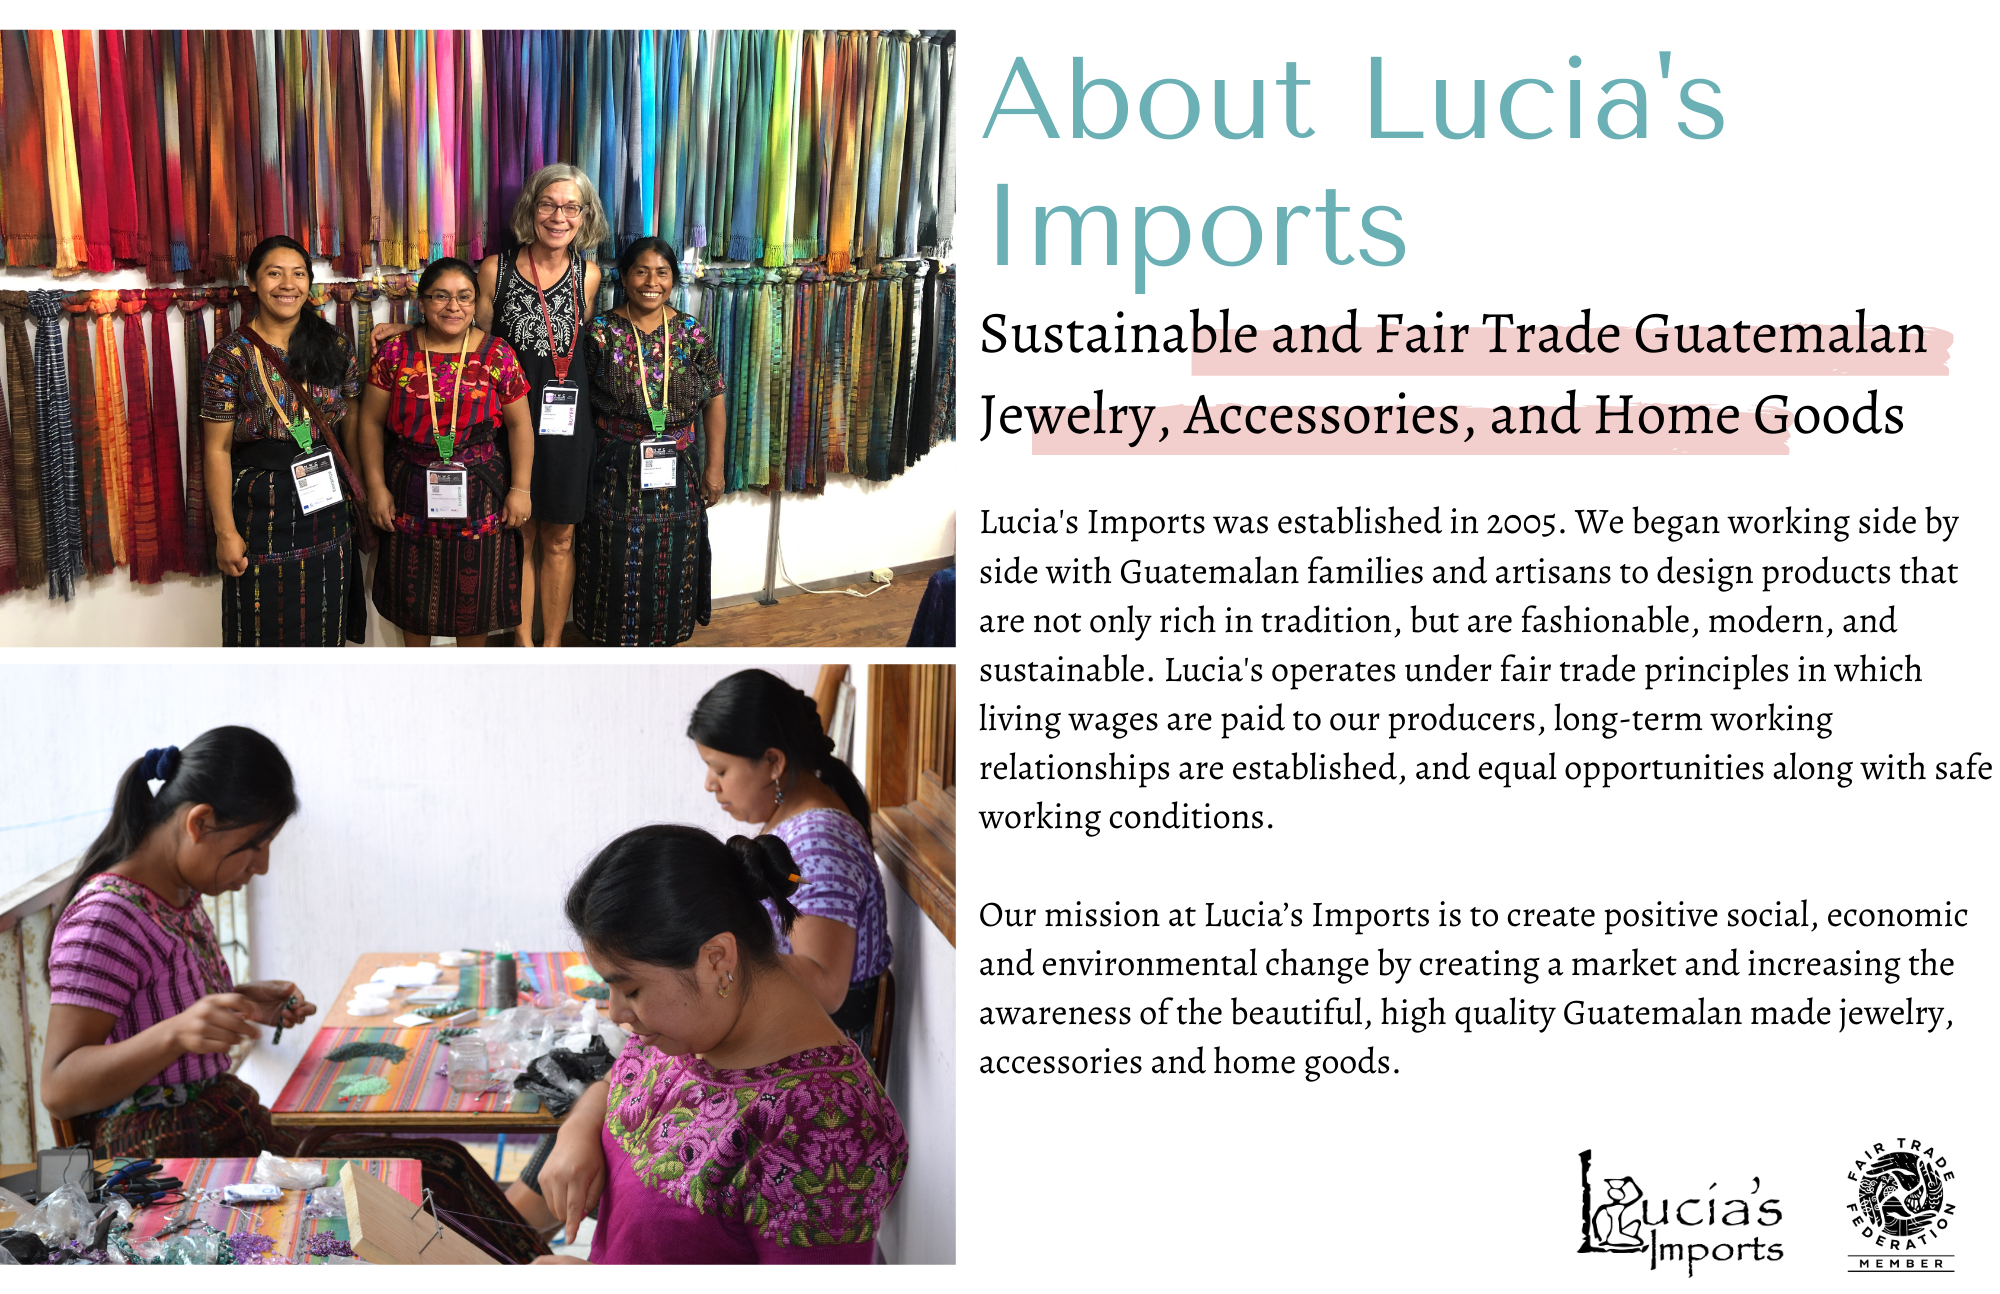 About Lucia's Products